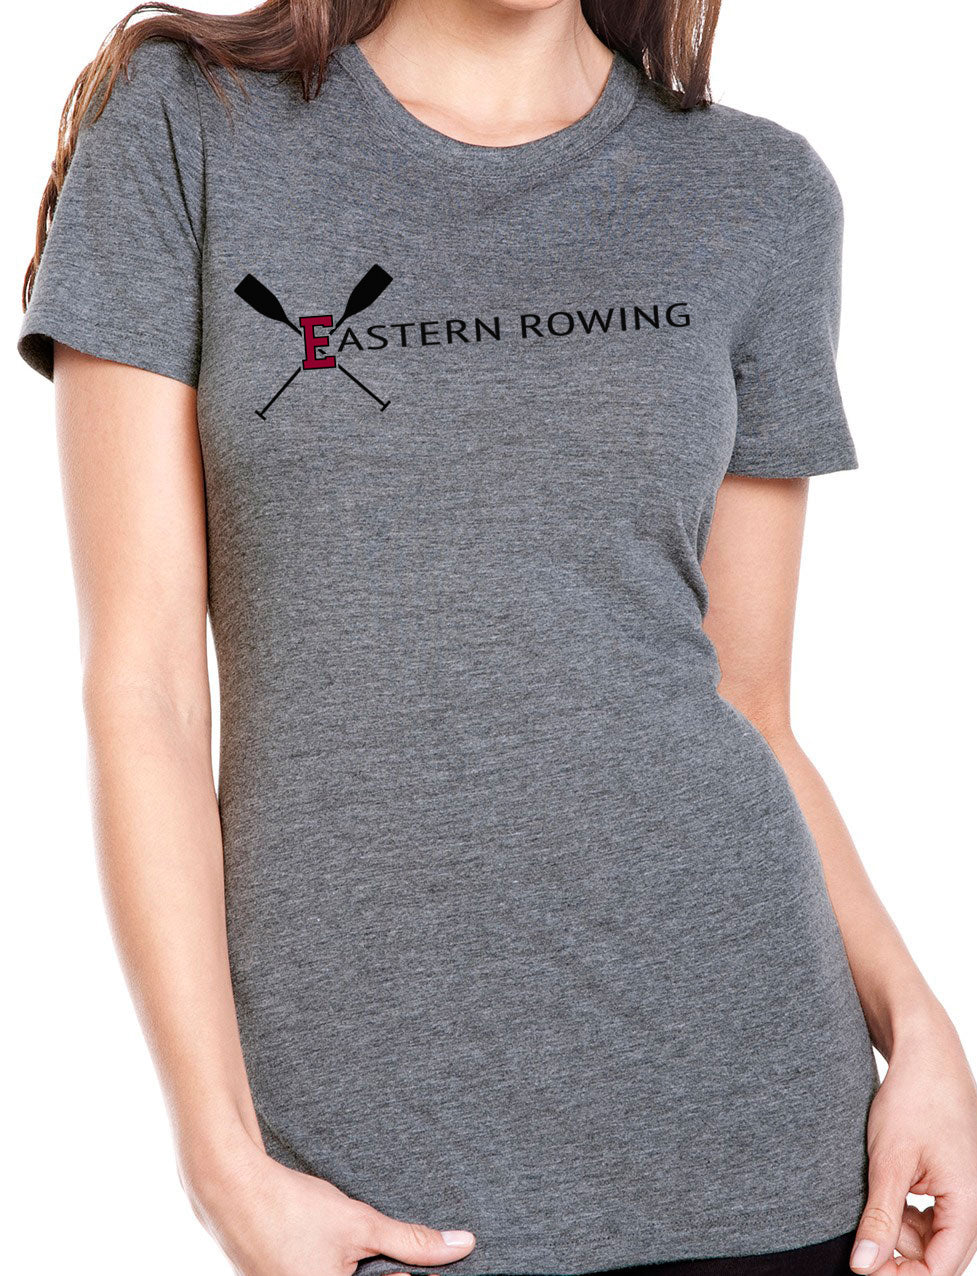 EASTERN ROWING Women's Tri-Blend Short Sleeve